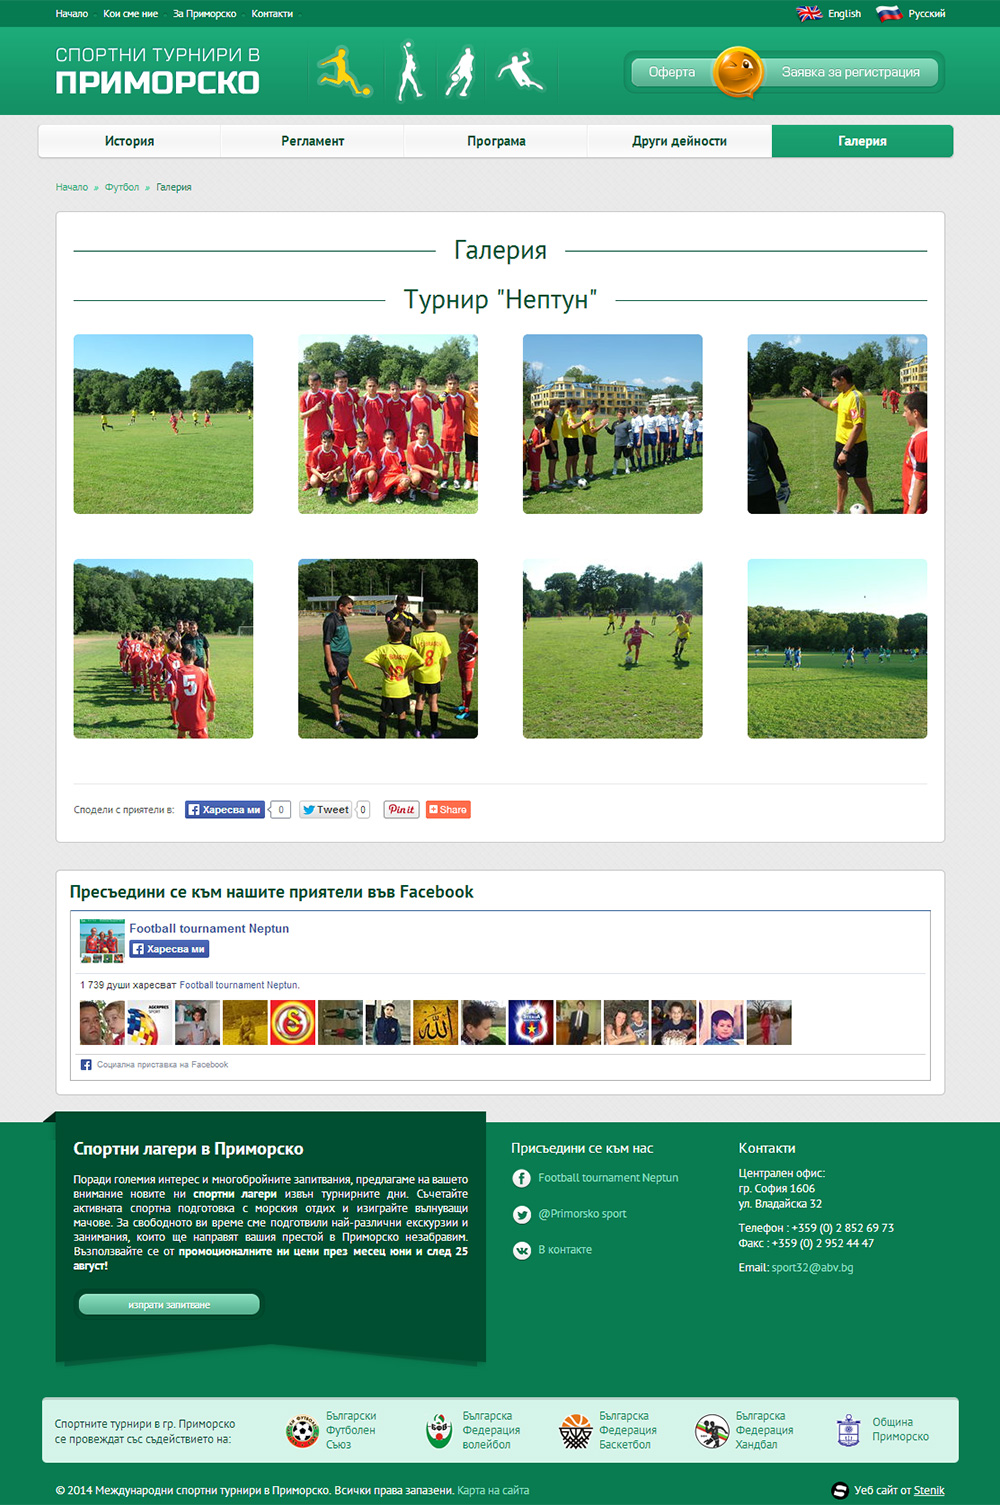 Web site for Primorsko Tournaments, Sportfest Foundation - Web Sites, Stenik, StenikCMS